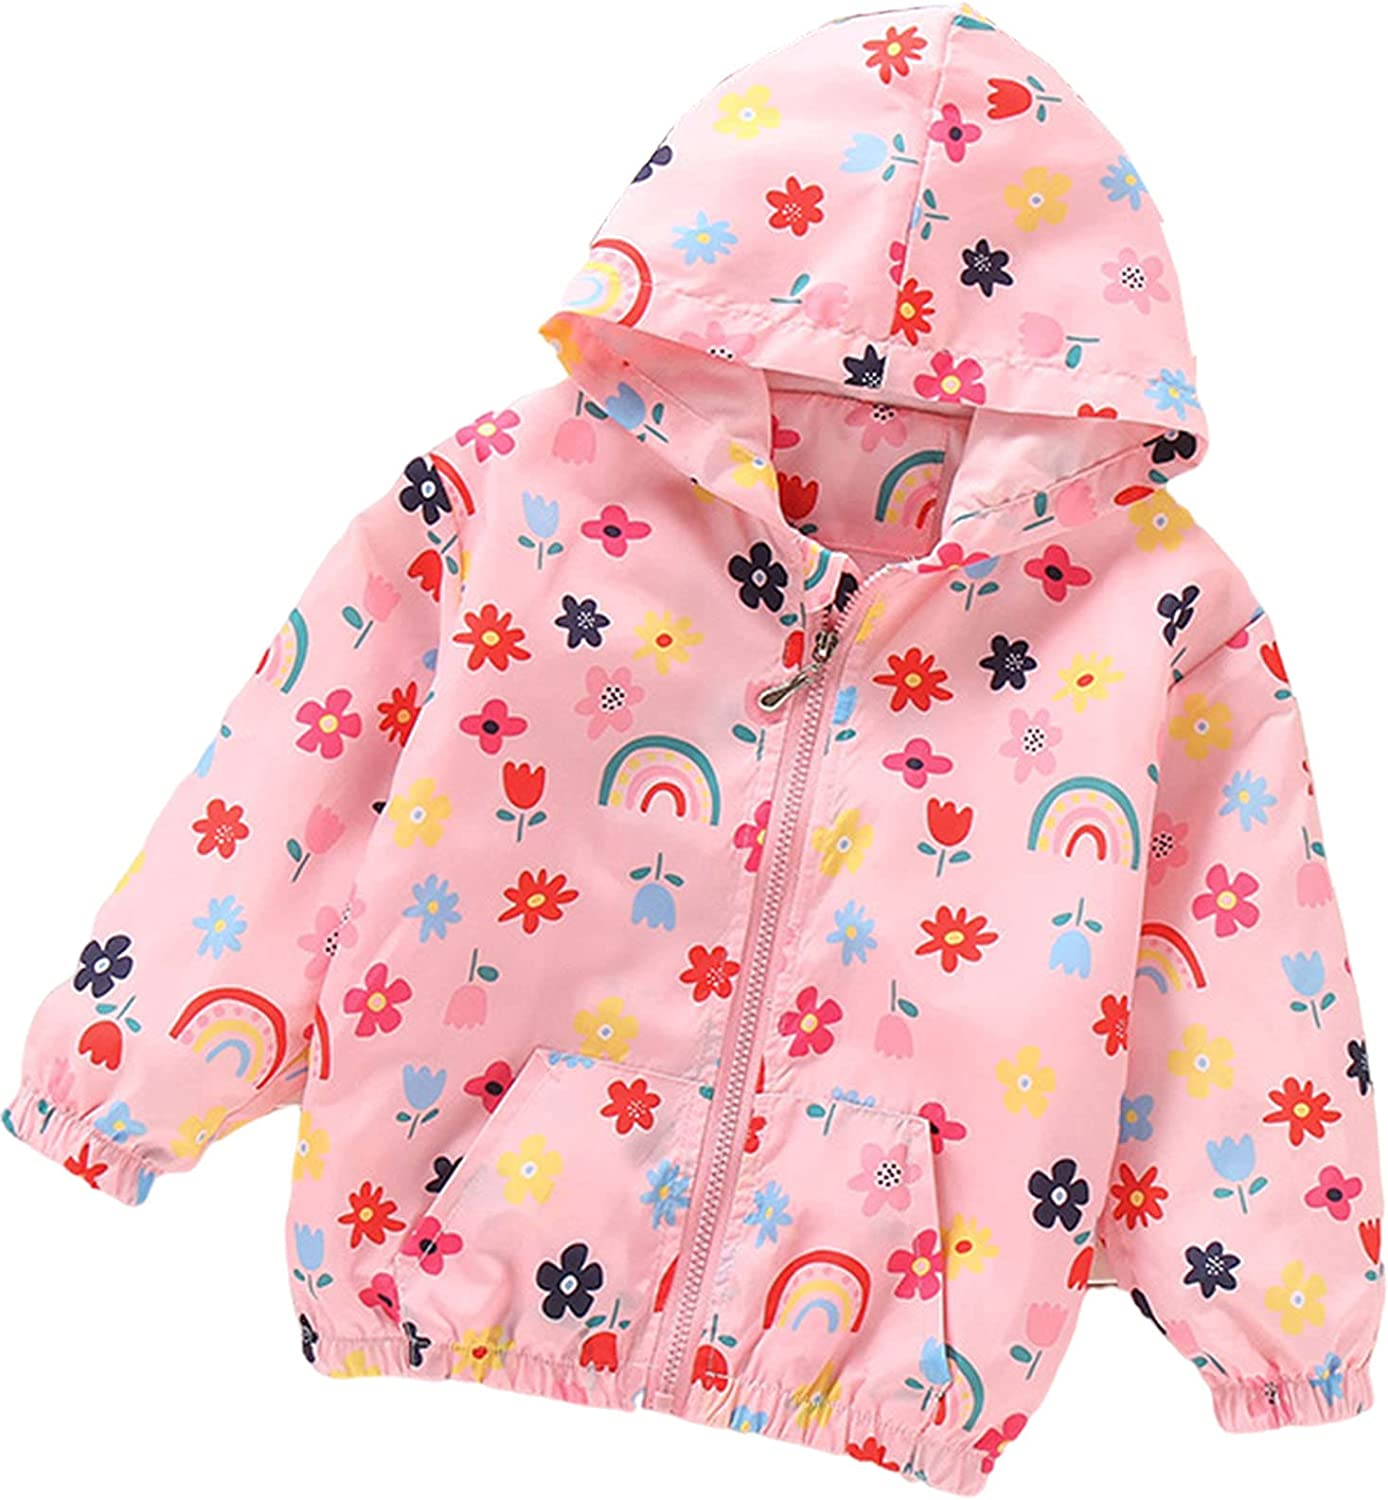 Toddler Fall Jackets Girls 5 popular Spring new work one after another Spring Outerwear Windbreaker Unicorn